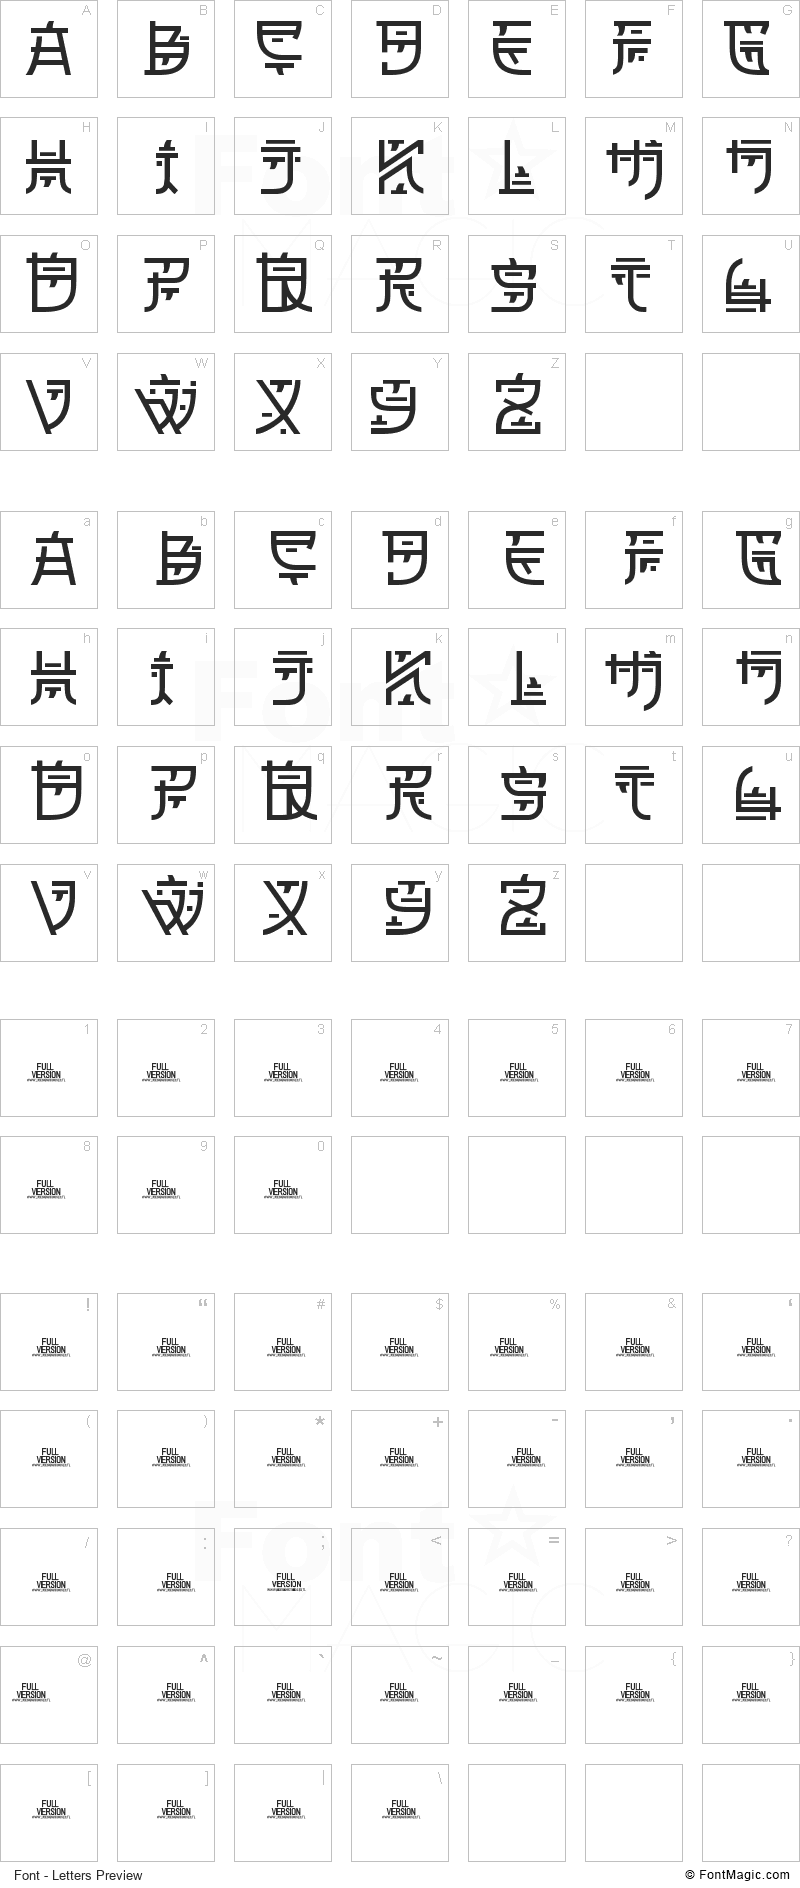 Zilap Oriental Font - All Latters Preview Chart